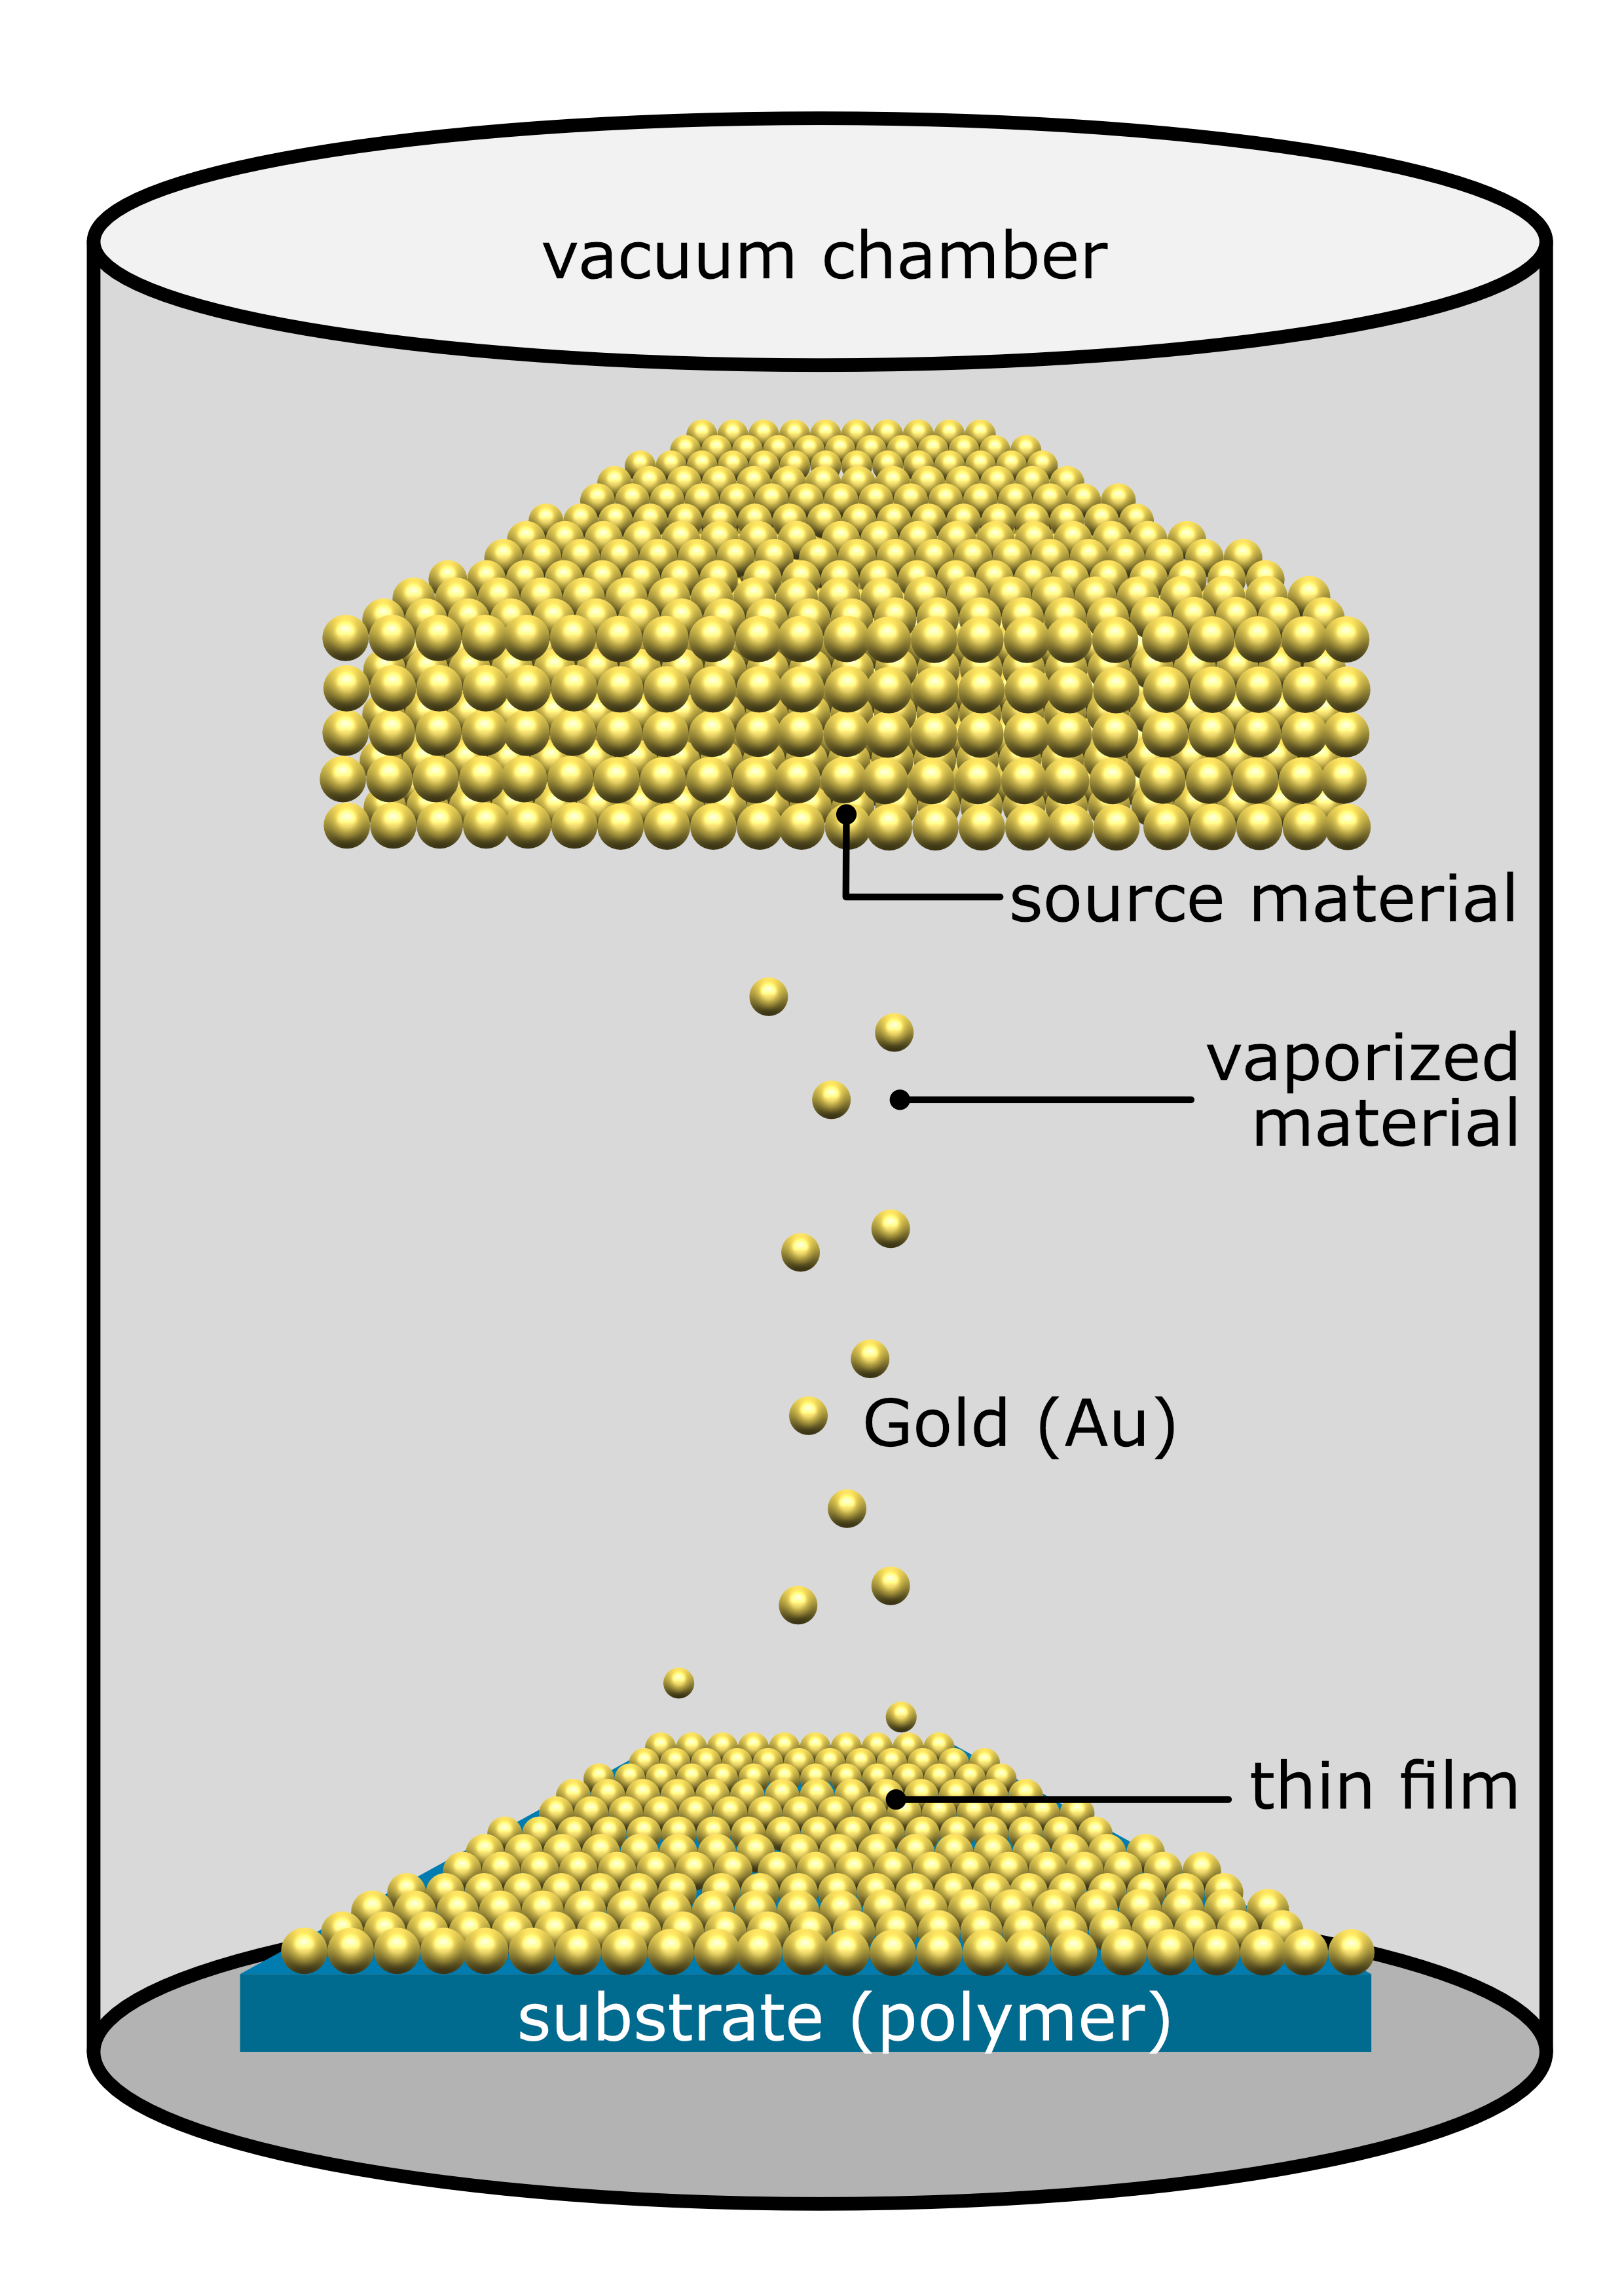 gold atoms are released from a source material in a vacuum chamber, and are deposited onto a polymer substrate.